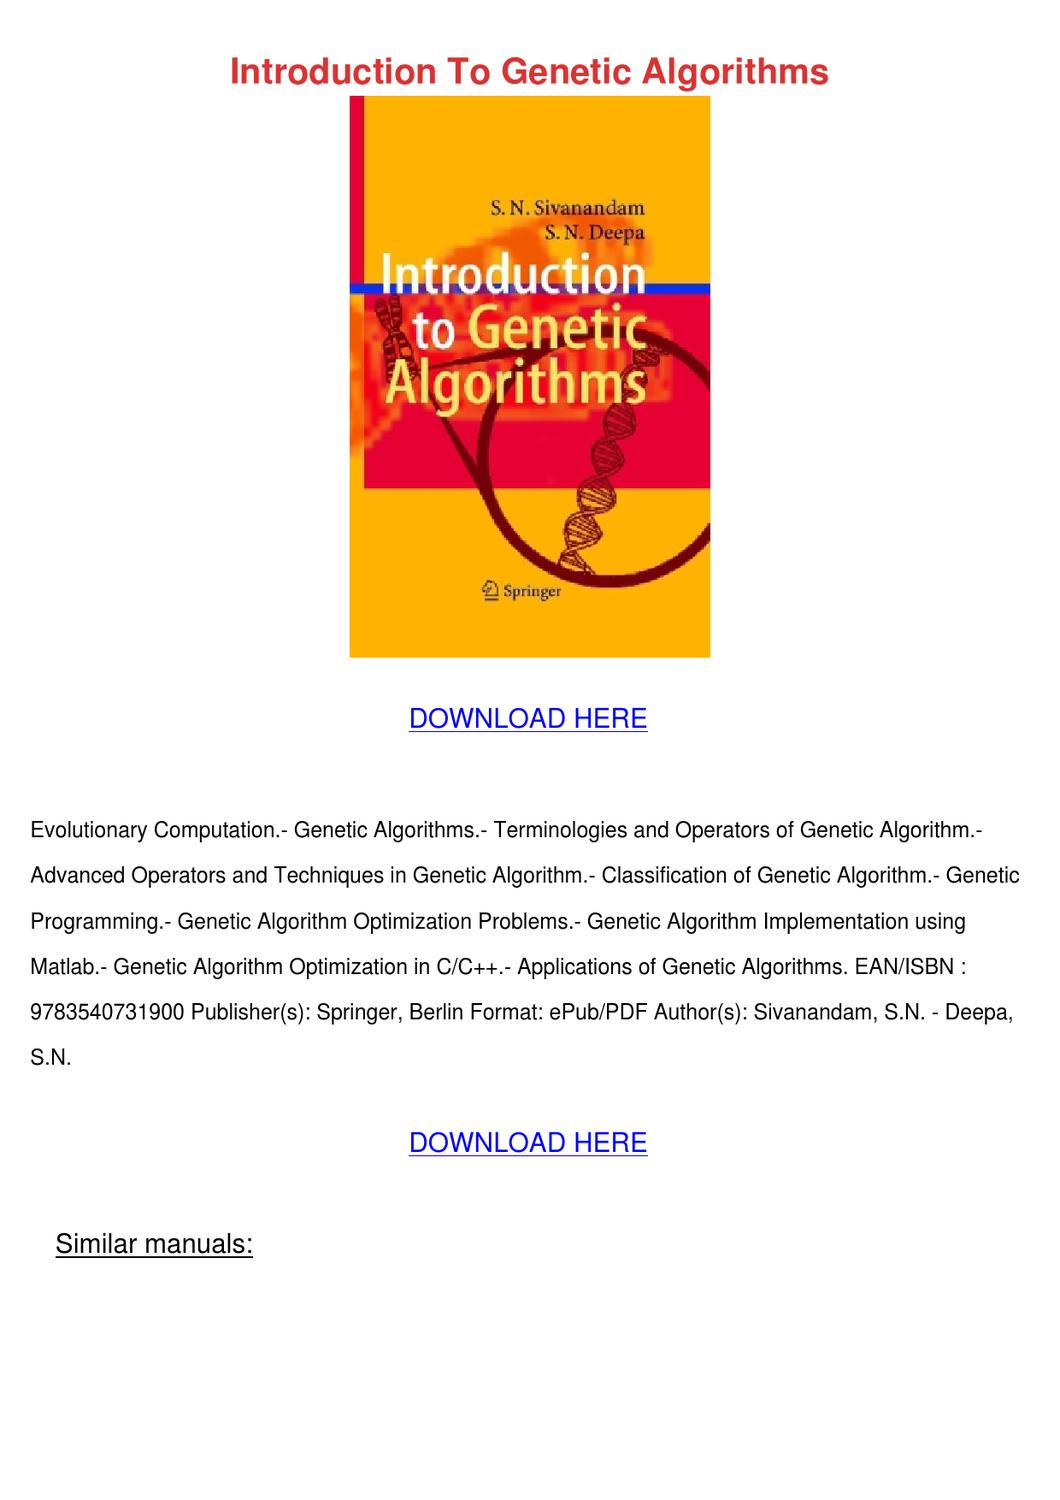 genetic algorithm by sivanathan and deepa 762 realcoded genetic algorithm rcga for integer linear programming in productiontransportation problems with flexible transportation sn sivanandam, s n deepa no preview available - 2009 introduction to genetic algorithms sn sivanandam, s n deepa no preview available - 2007.